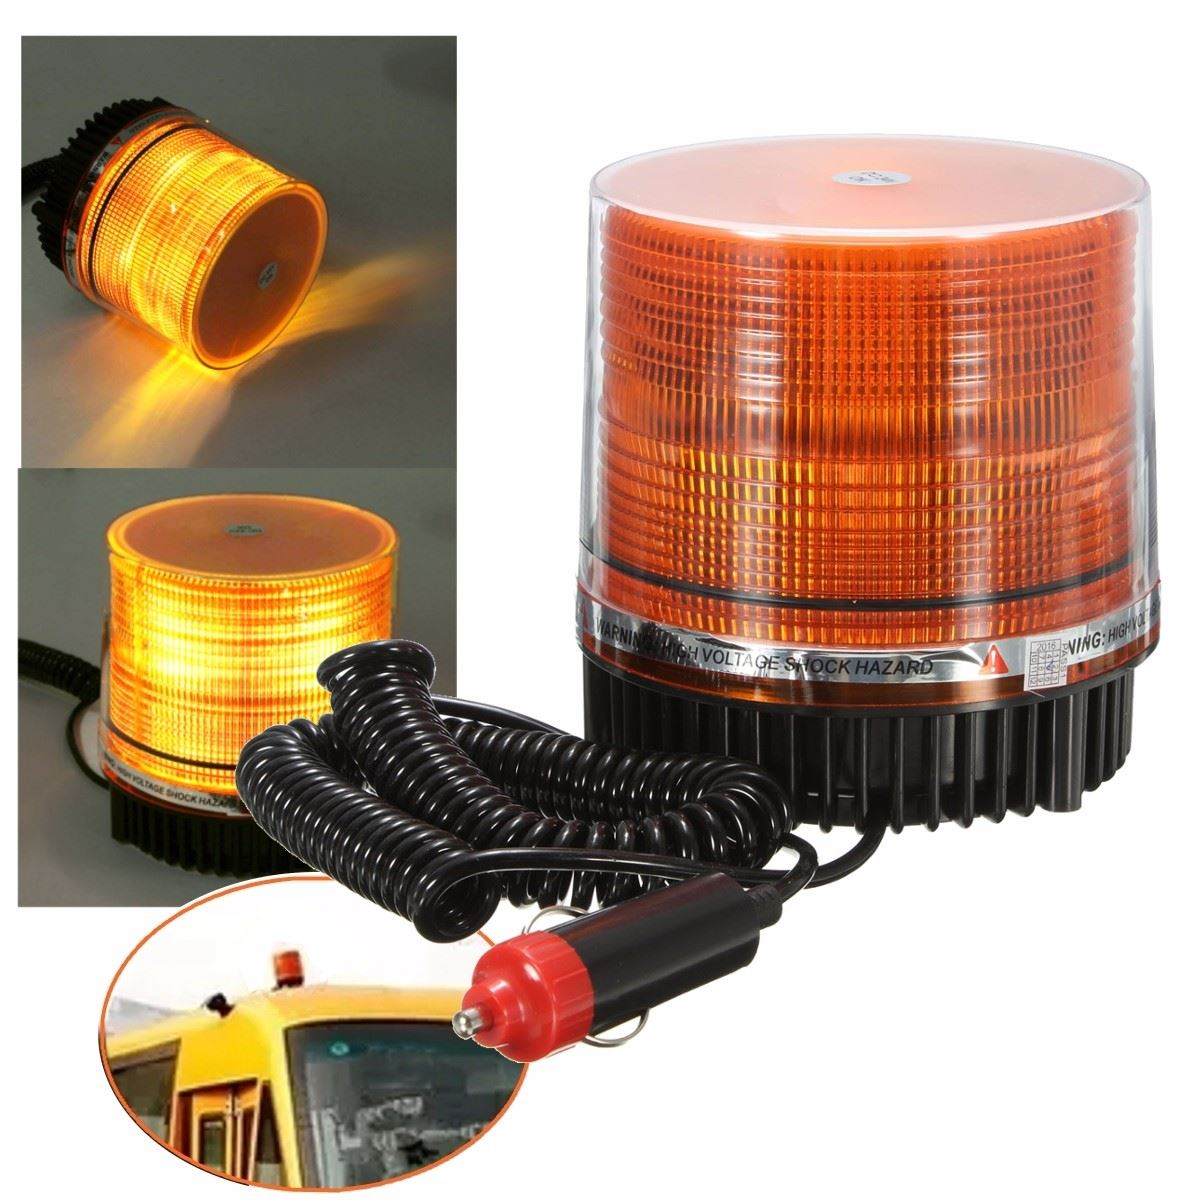 New DC12V LED Amber Car Truck Magnetic Mounted Vehicle Emergency Beacon Emergency Strobe Flashing Lamp